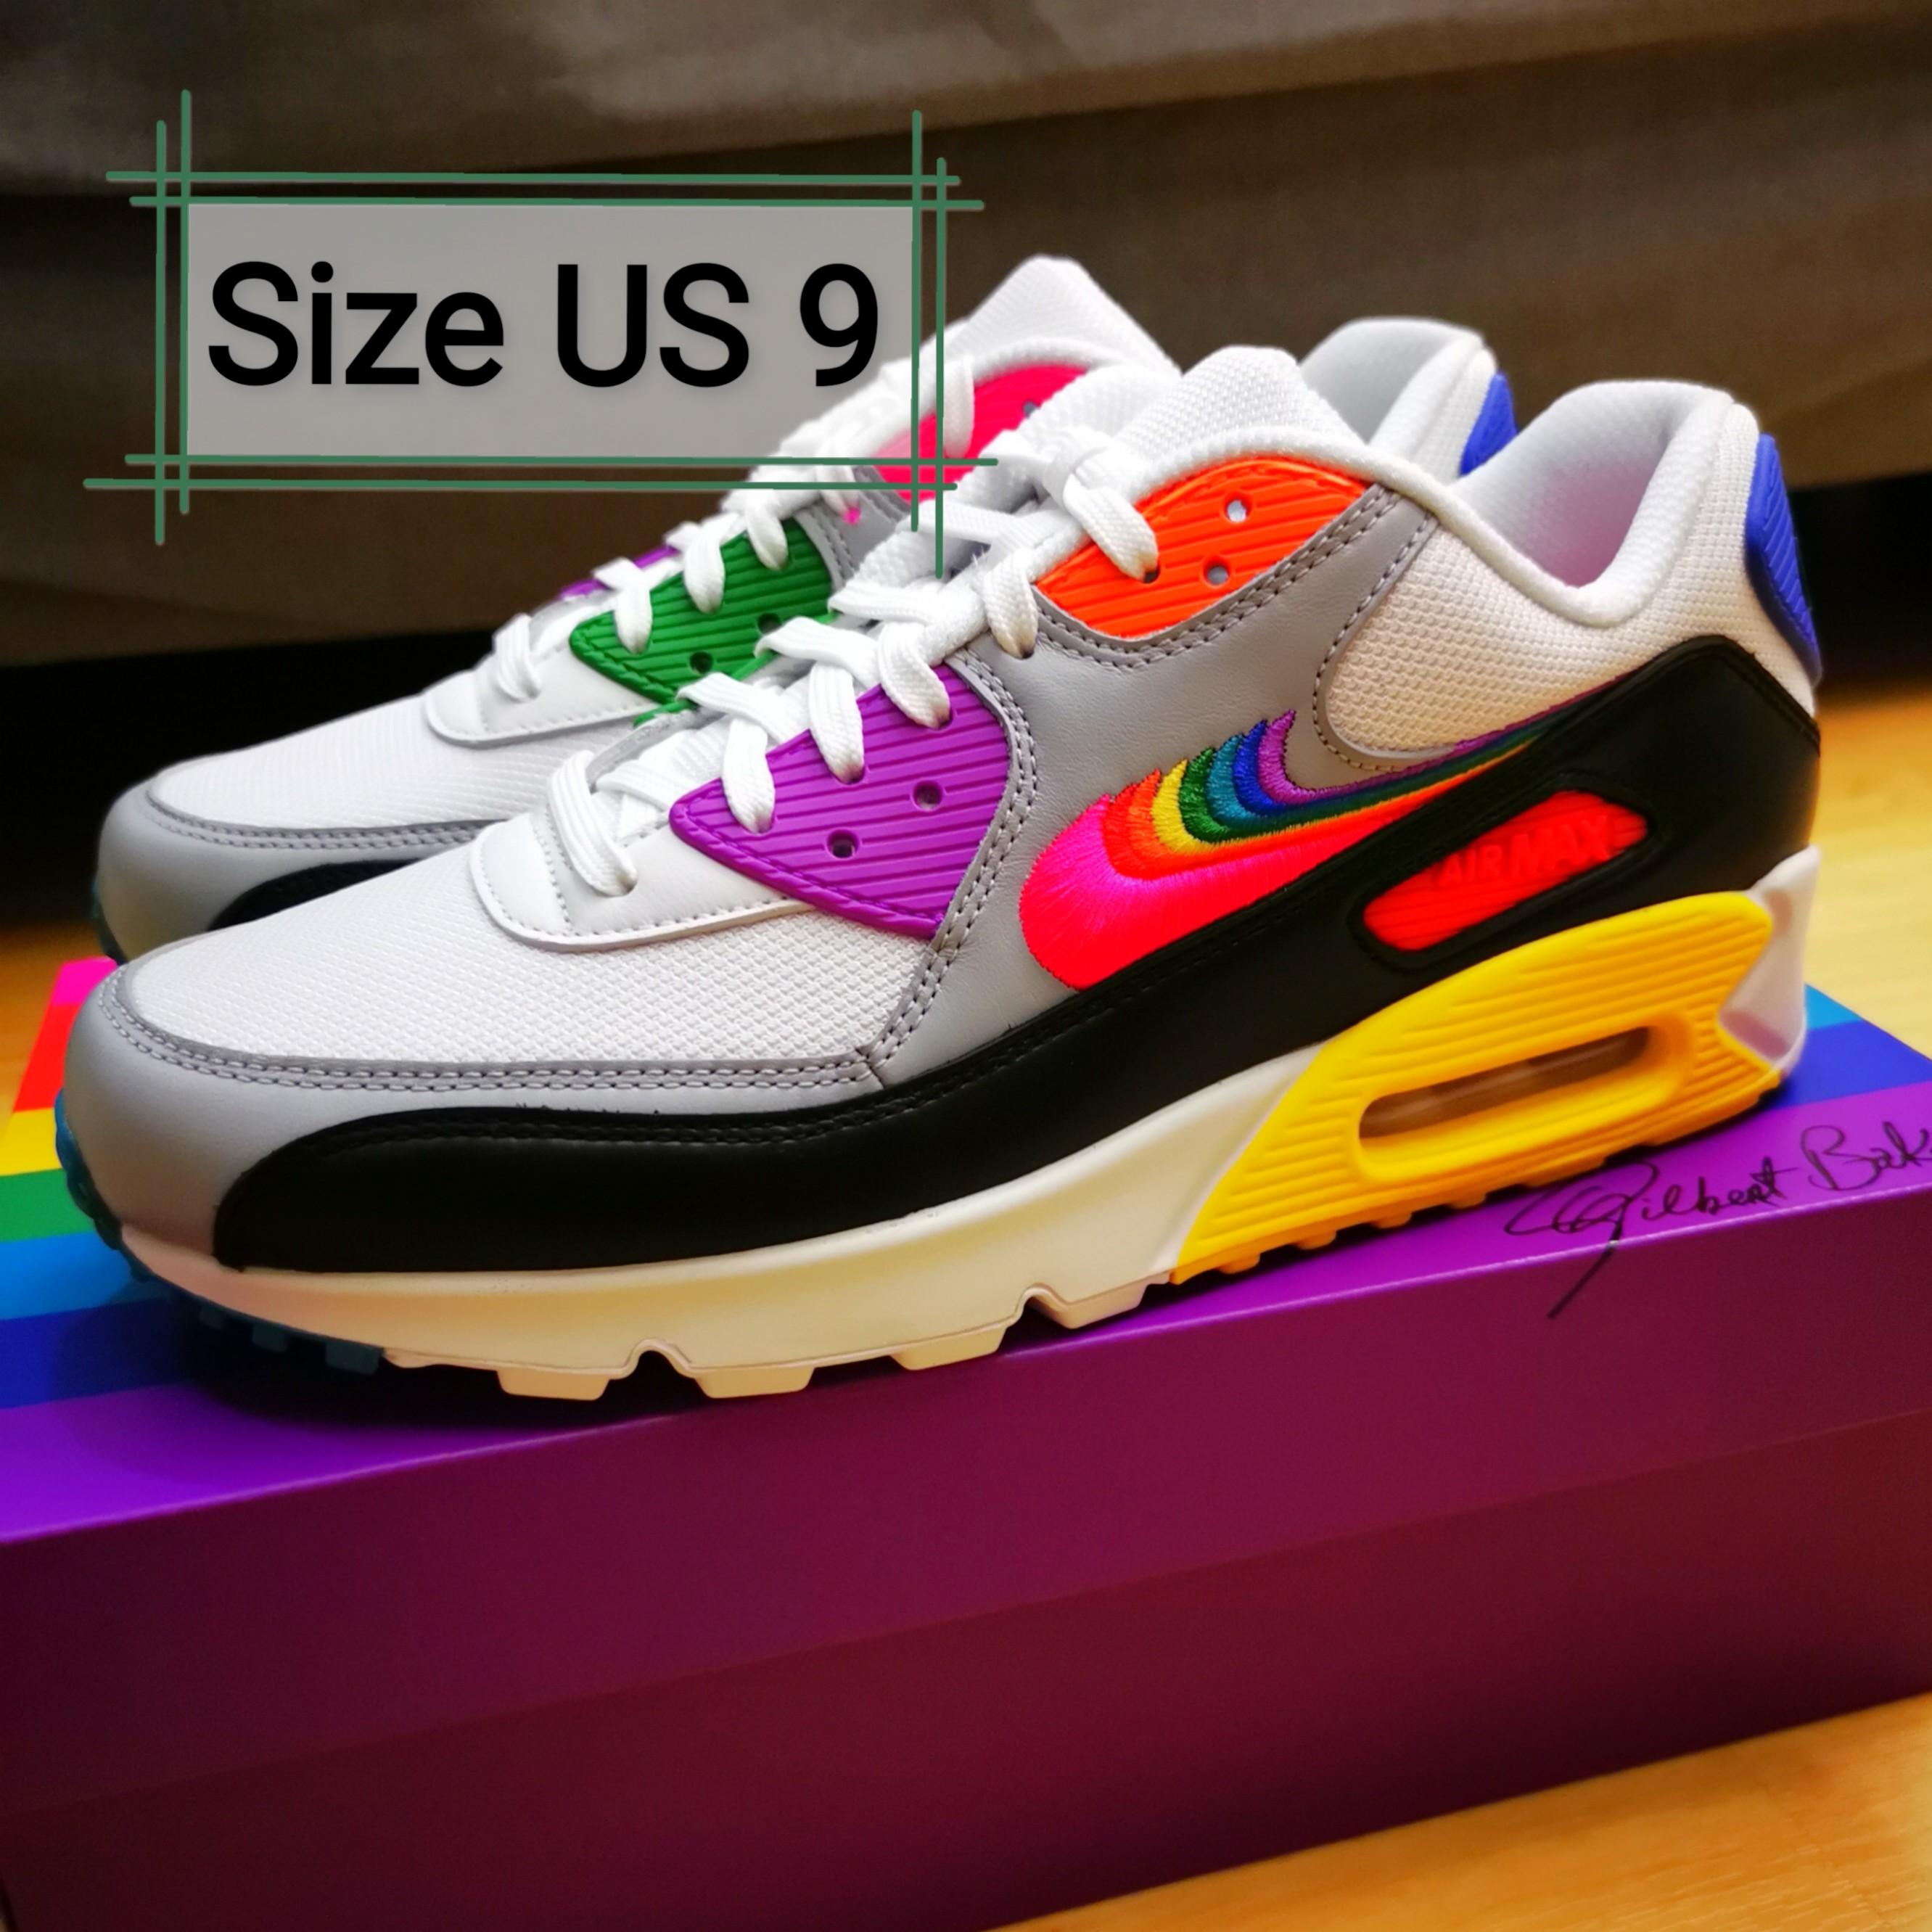 brand new e074d 4d44d US 9) Nike Air Max 90 Betrue 2019, Men's Fashion, Footwear ...